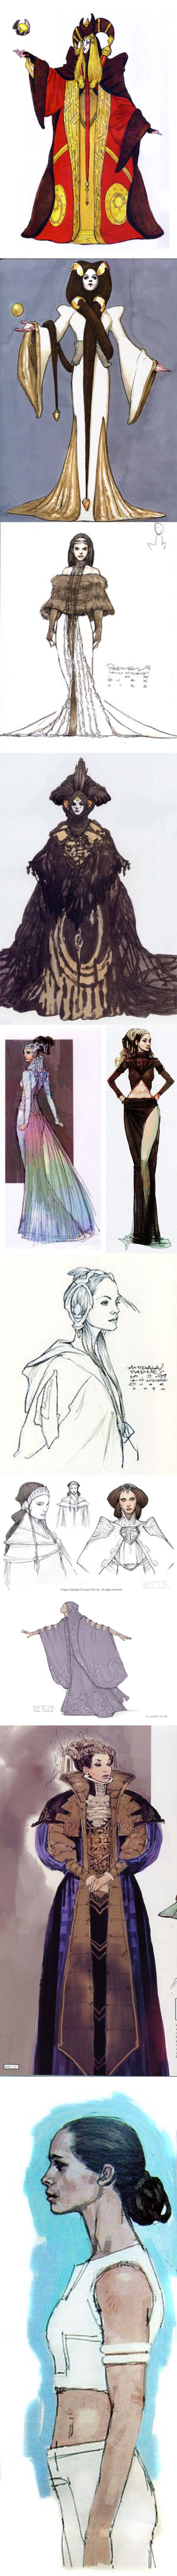 Star Wars- Padmé Amidala Star Wars is one of the best known properties of all time- pioneering effects-driven film, toy tie-ins, and using whatever's lying around to make props. Padmé Amidala, originally known as Queen Amidala, the child-ruler of Naboo, was one of the most prolific projects for the Star Wars prequels, with dozens of outfits and designs done by artist McCaid, among others. Portrayed by Natalie Portman, and eventual wife to Anakin/Vader, mother to Luke and Laea